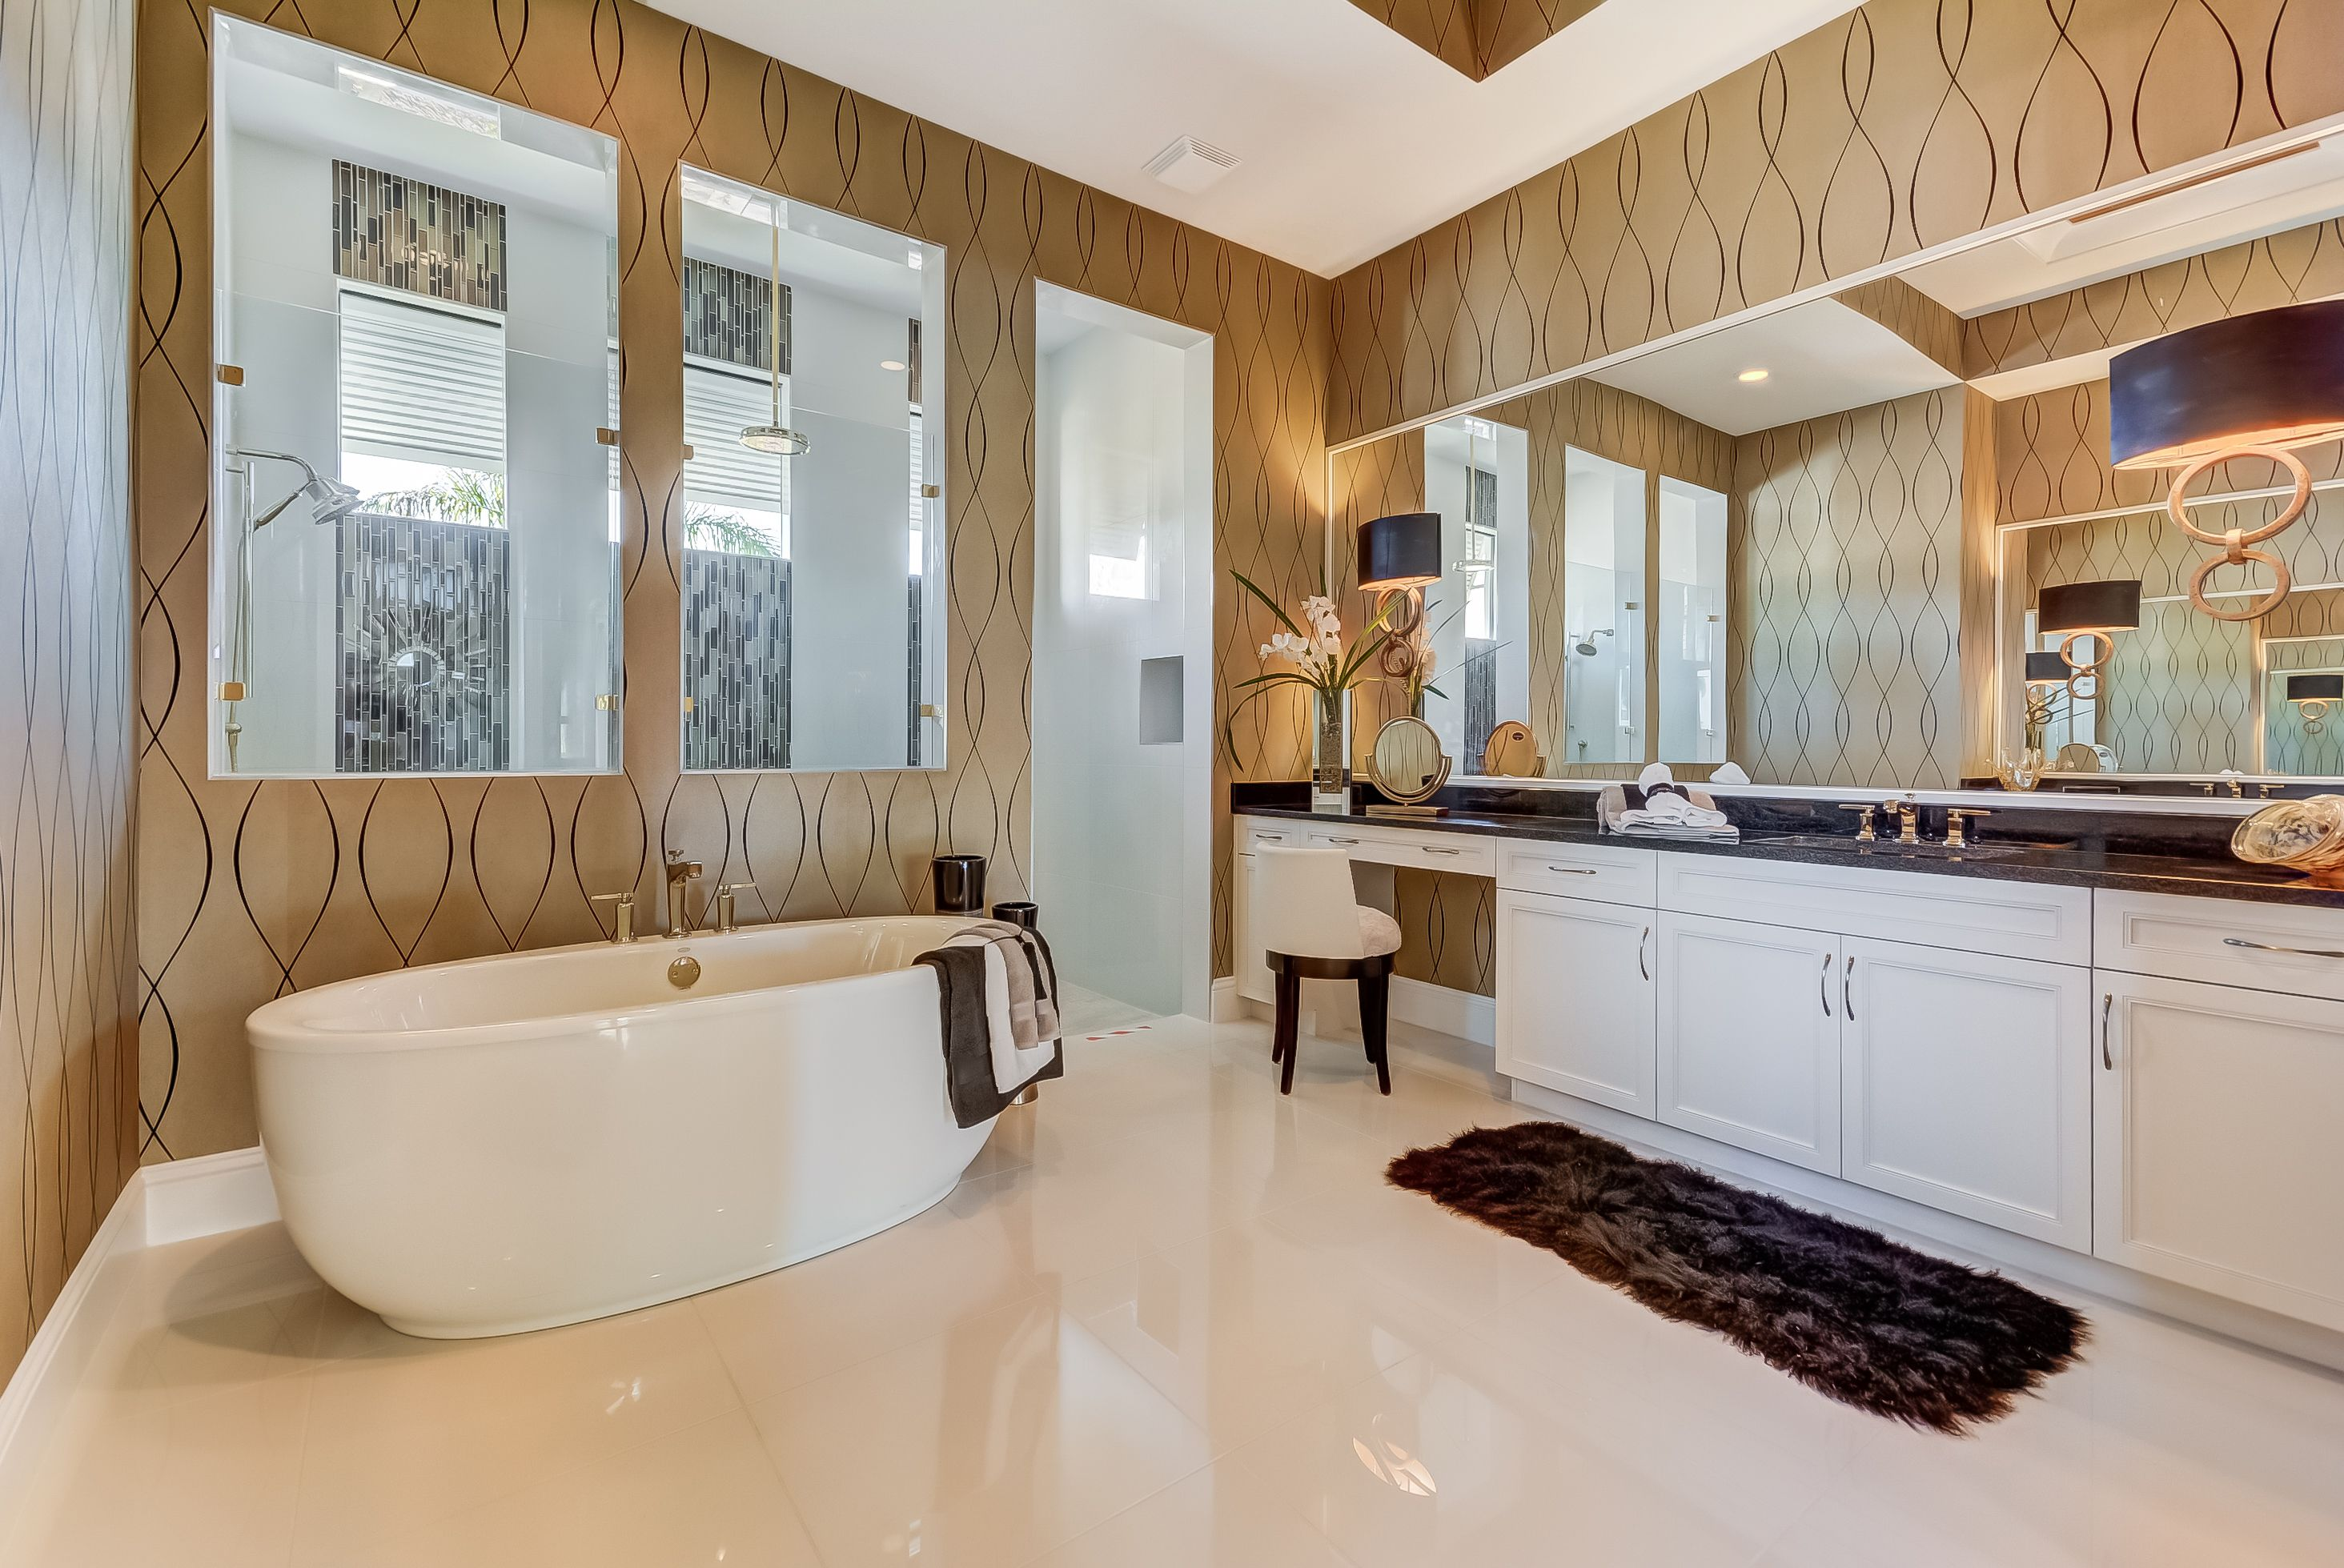 Bathroom featured in the Glenmore By Stock Development in Naples, FL